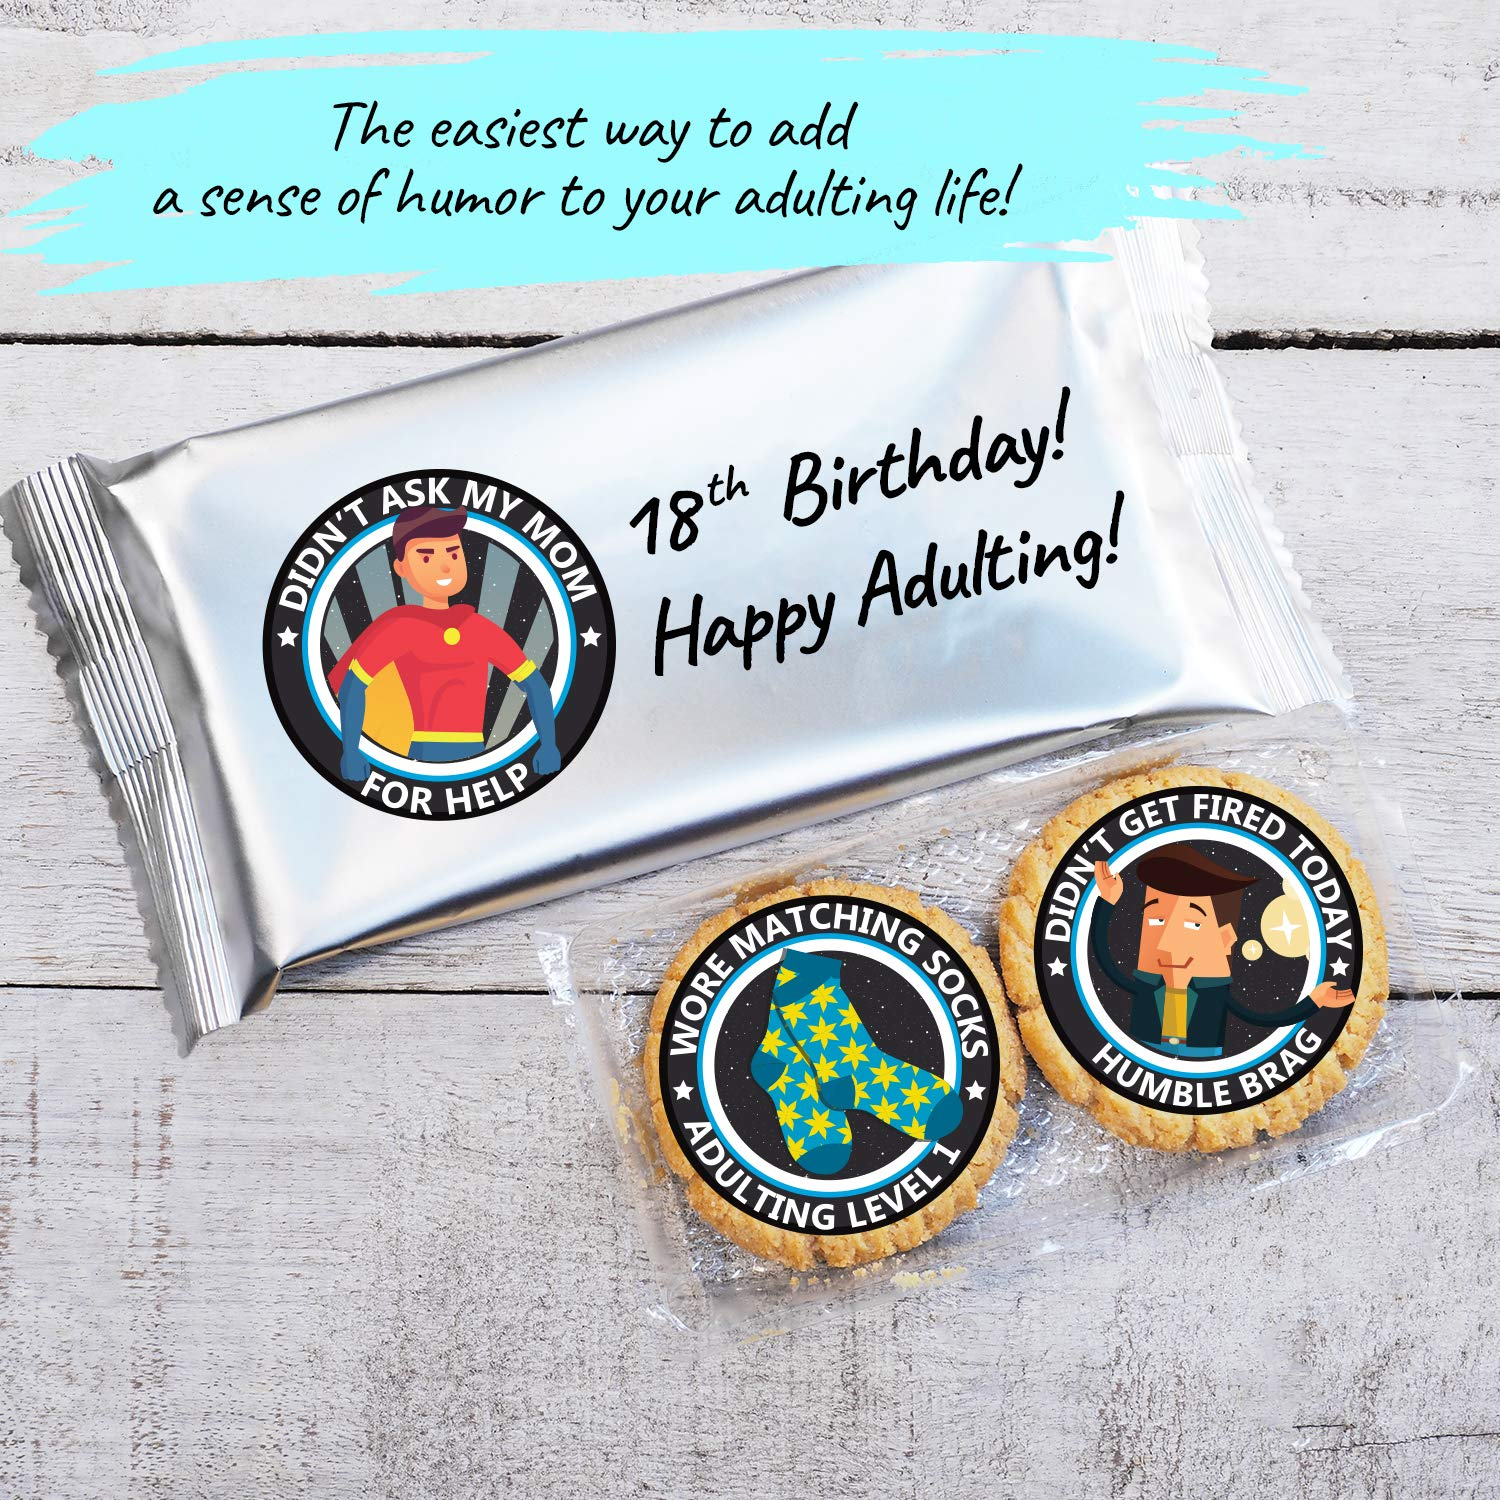 Customise your party gifts easily with just our Howcrafts adulting stickers